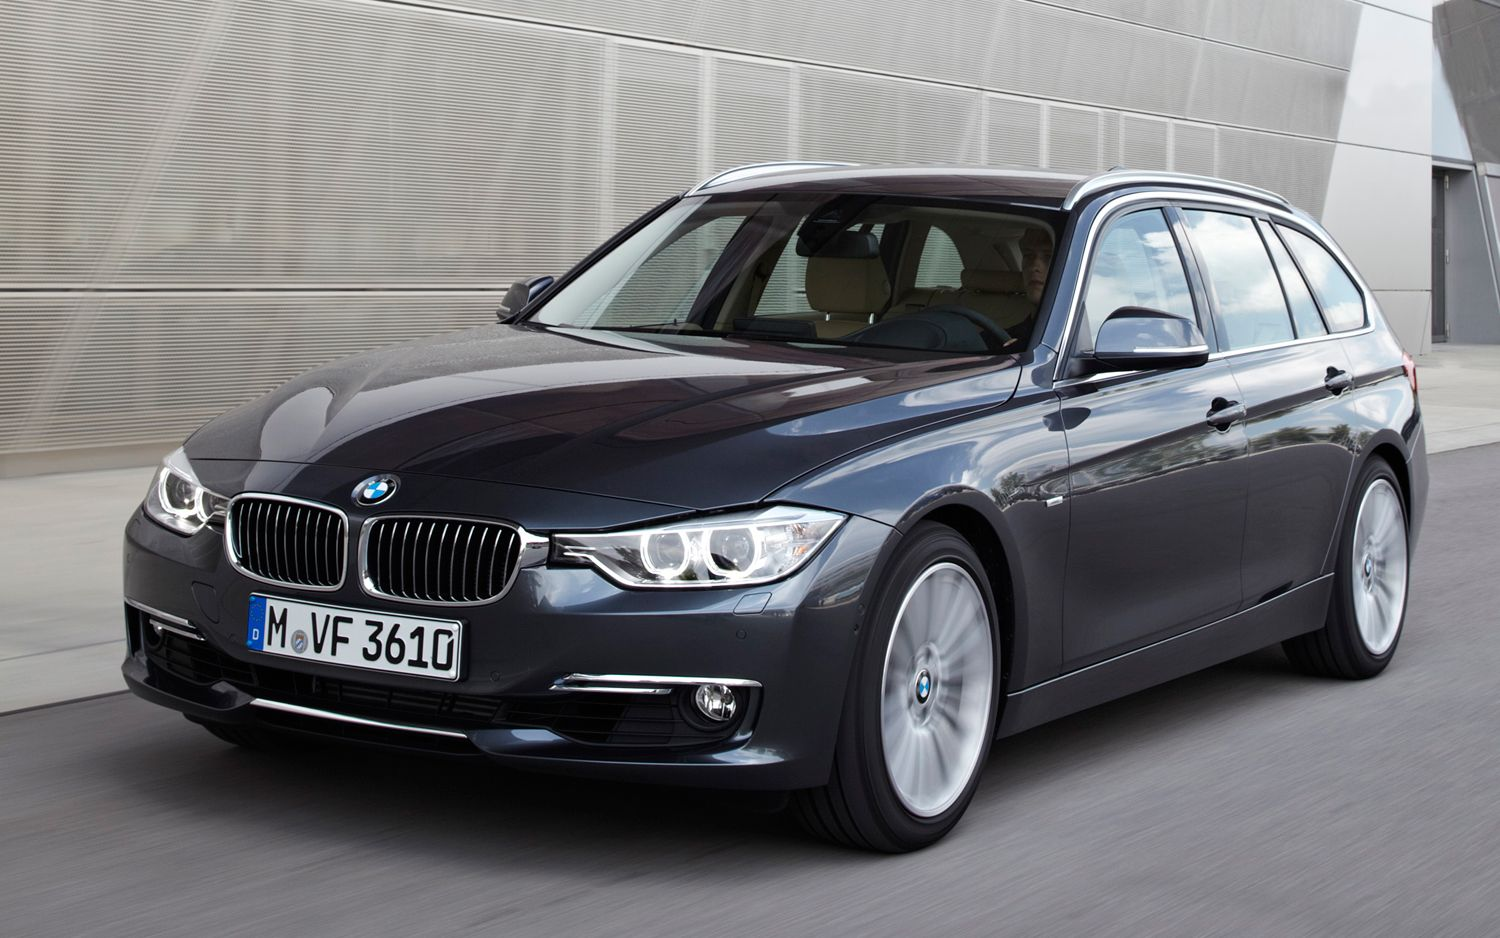 We Hear: BMW 3 Series Diesel AWD Wagon Coming to U.S.